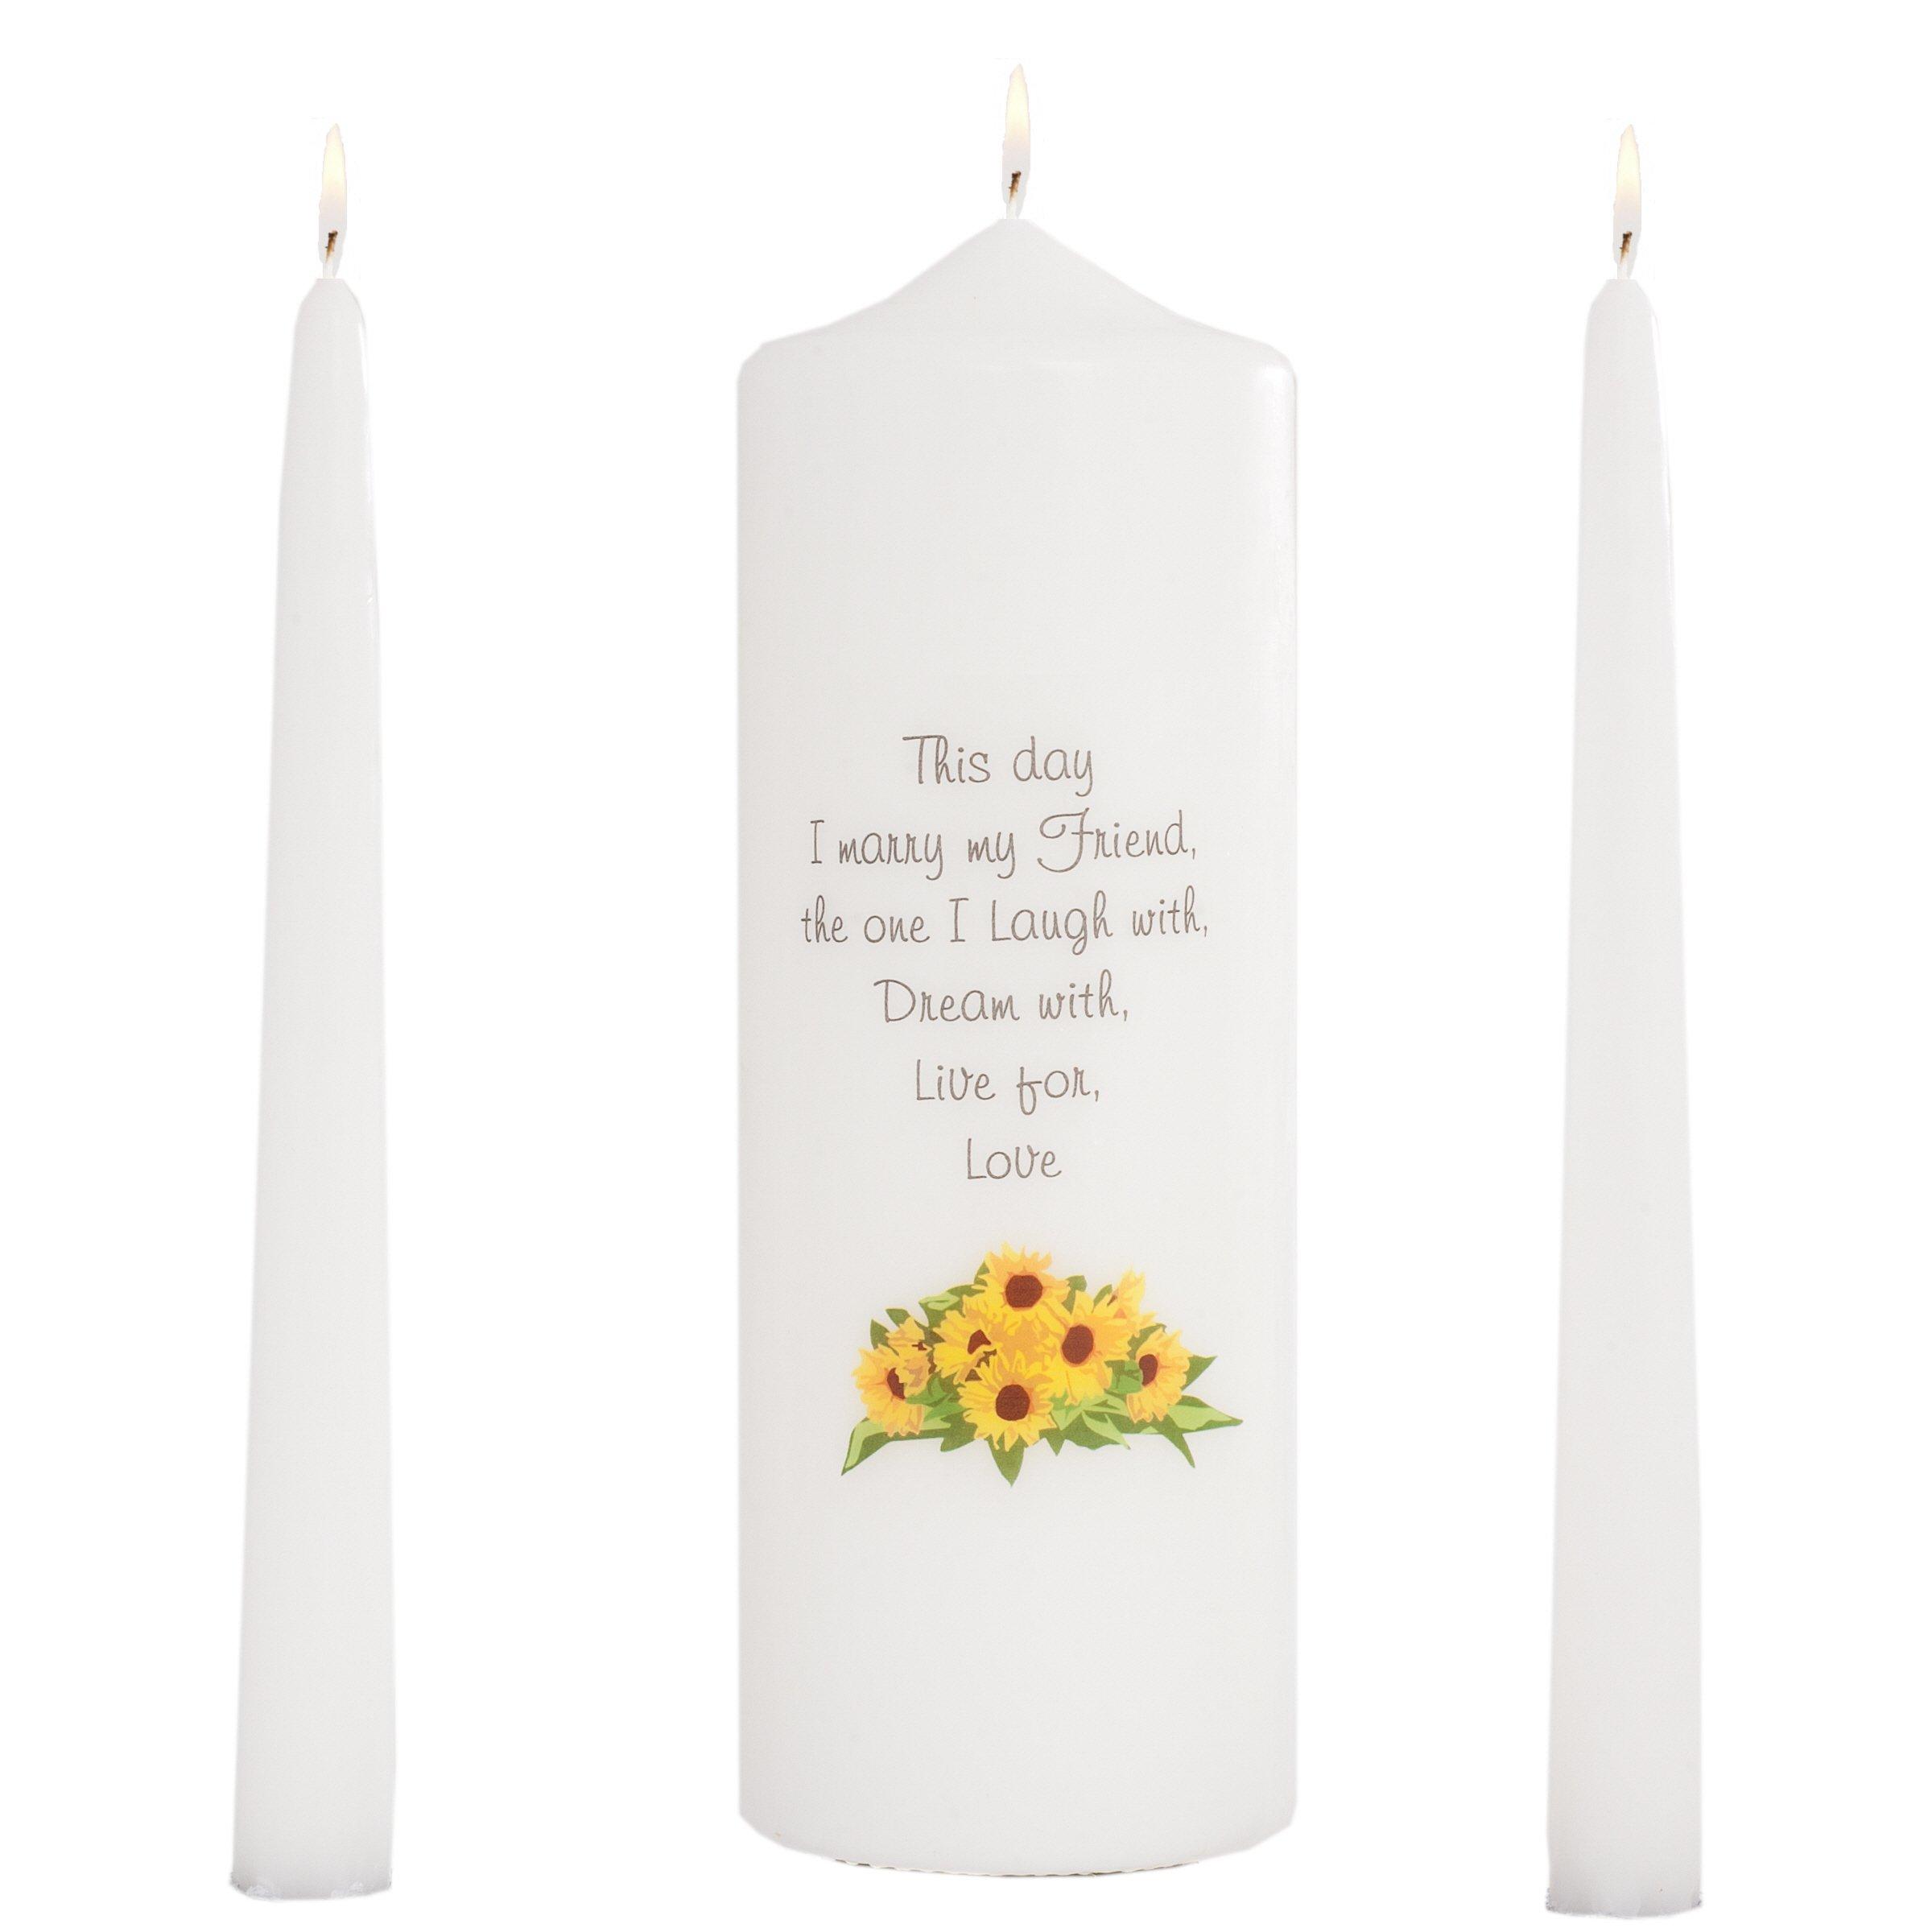 Celebration Candles Wedding Unity 9-Inch This Day I Marry My Friend Pillar Candle with Sunflower Motif and 10-Inch Taper Candle Set, White